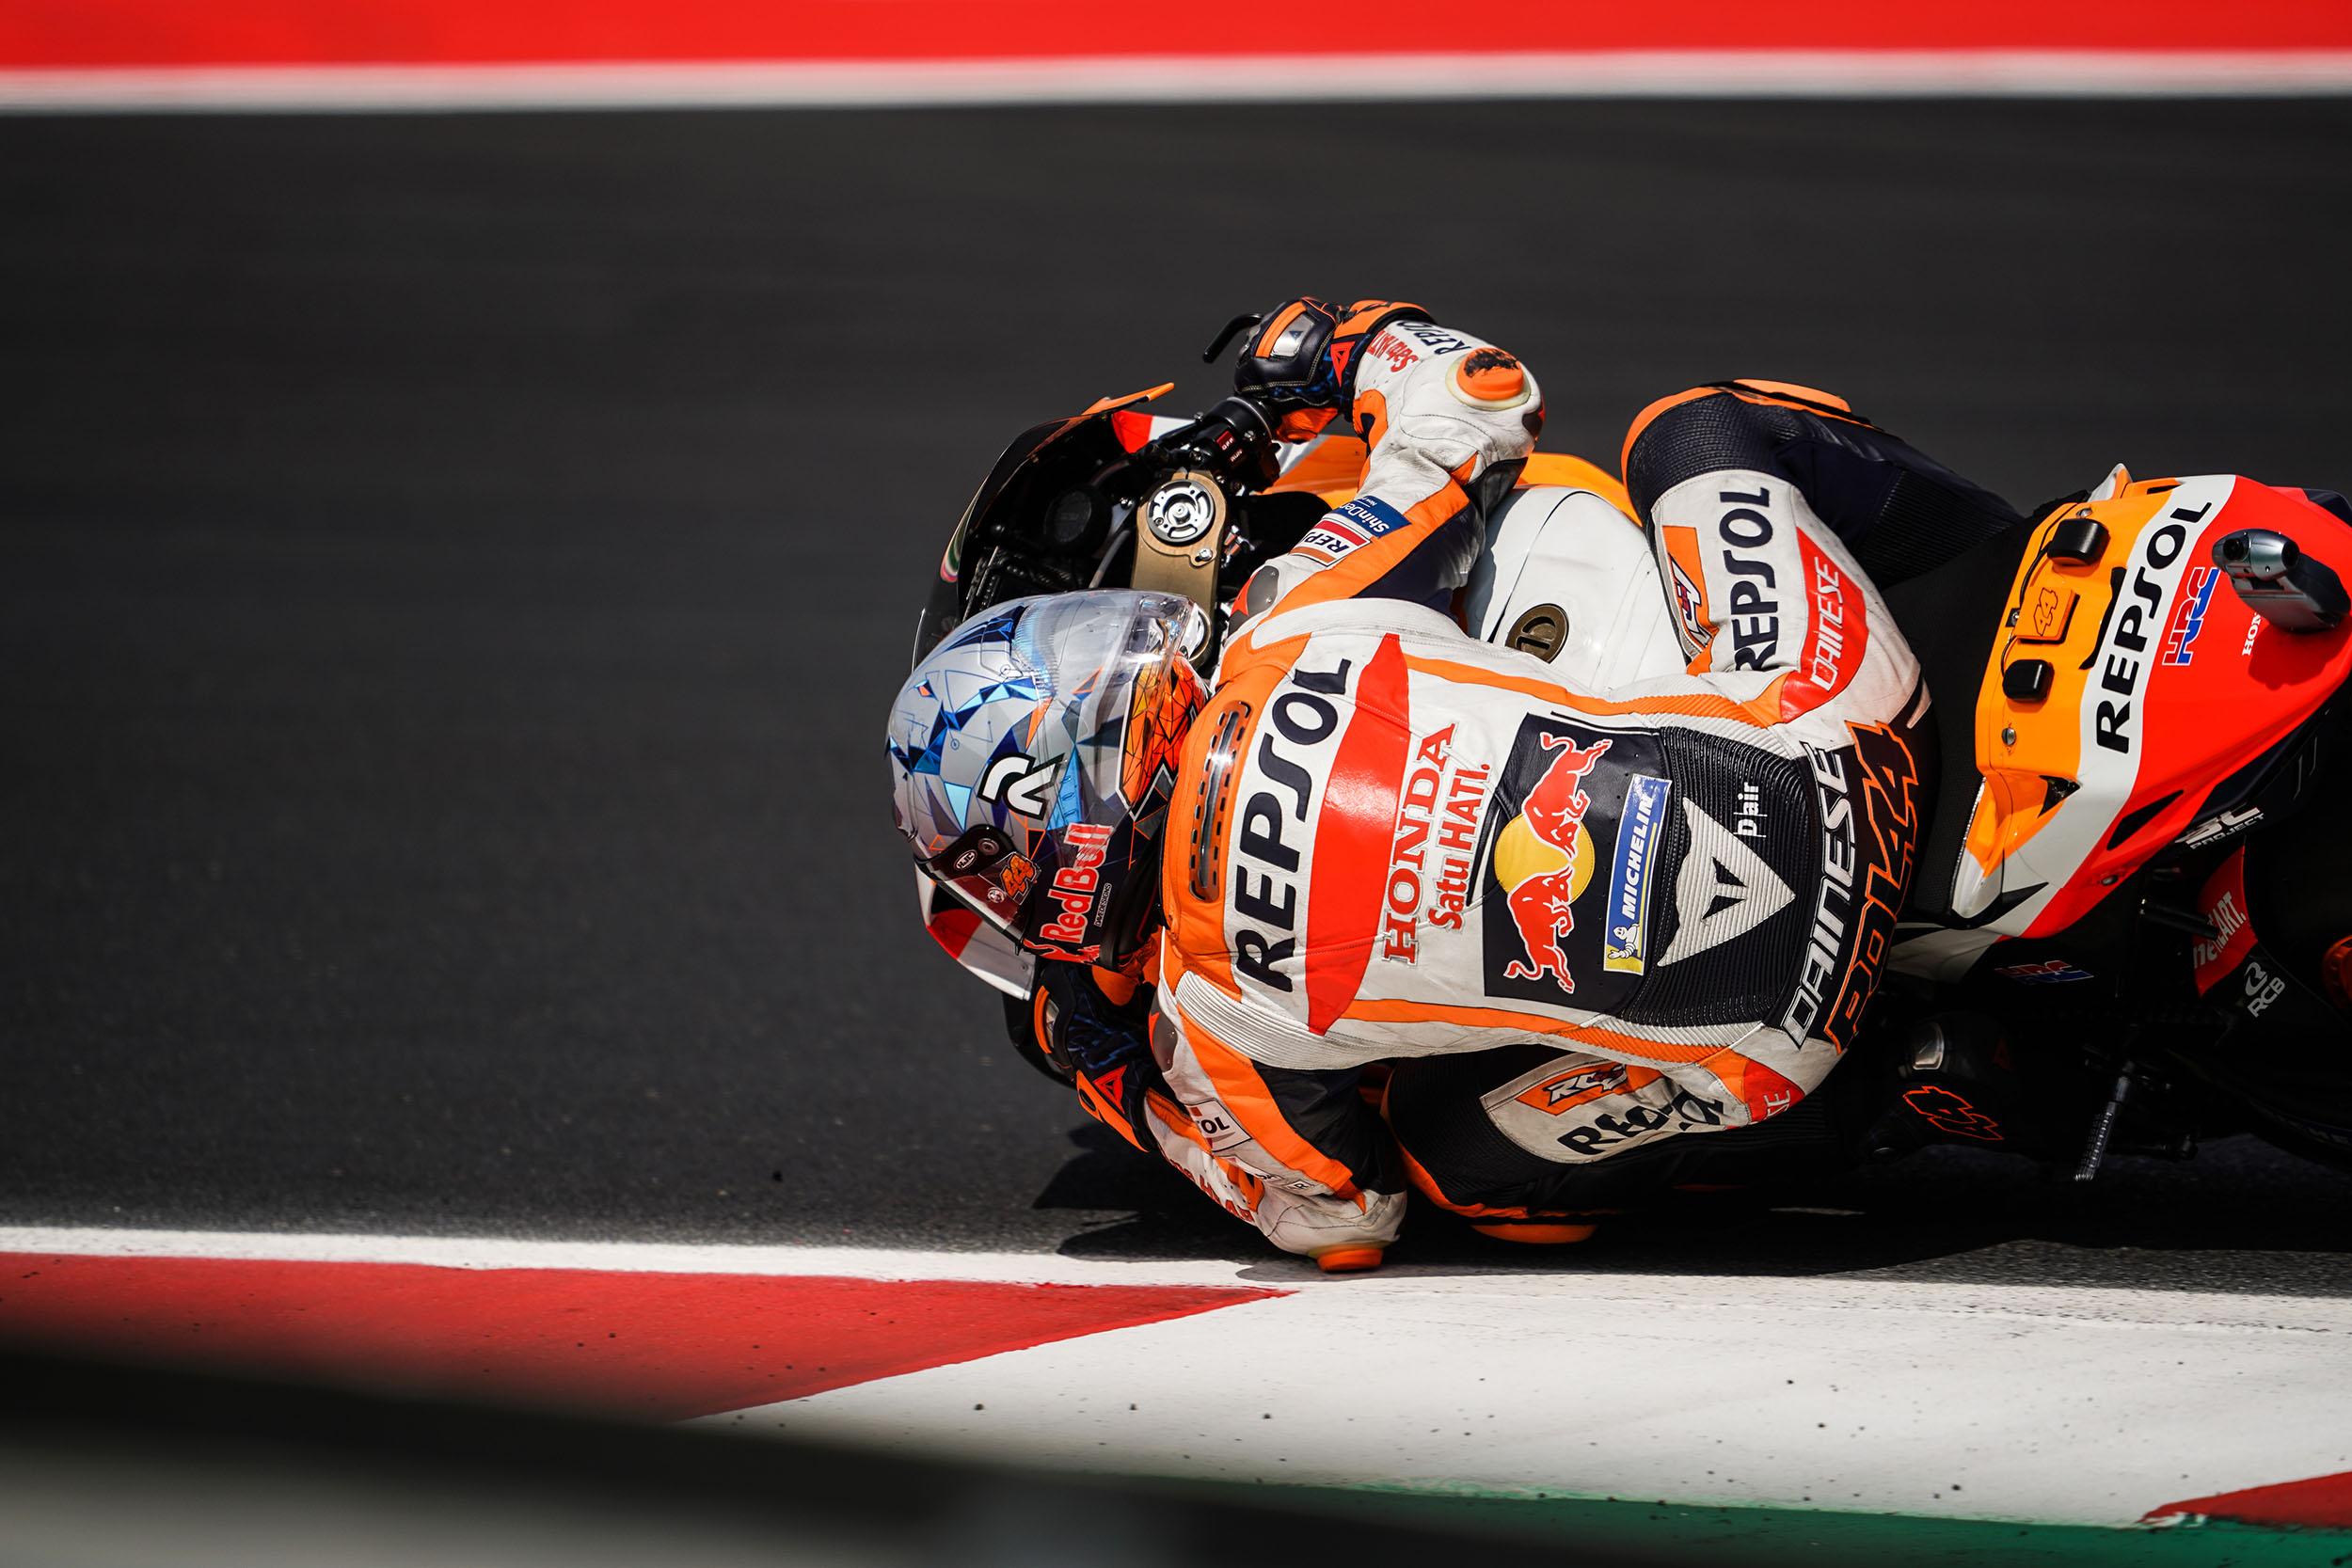 Second and third rows for Repsol Honda Team at Misano